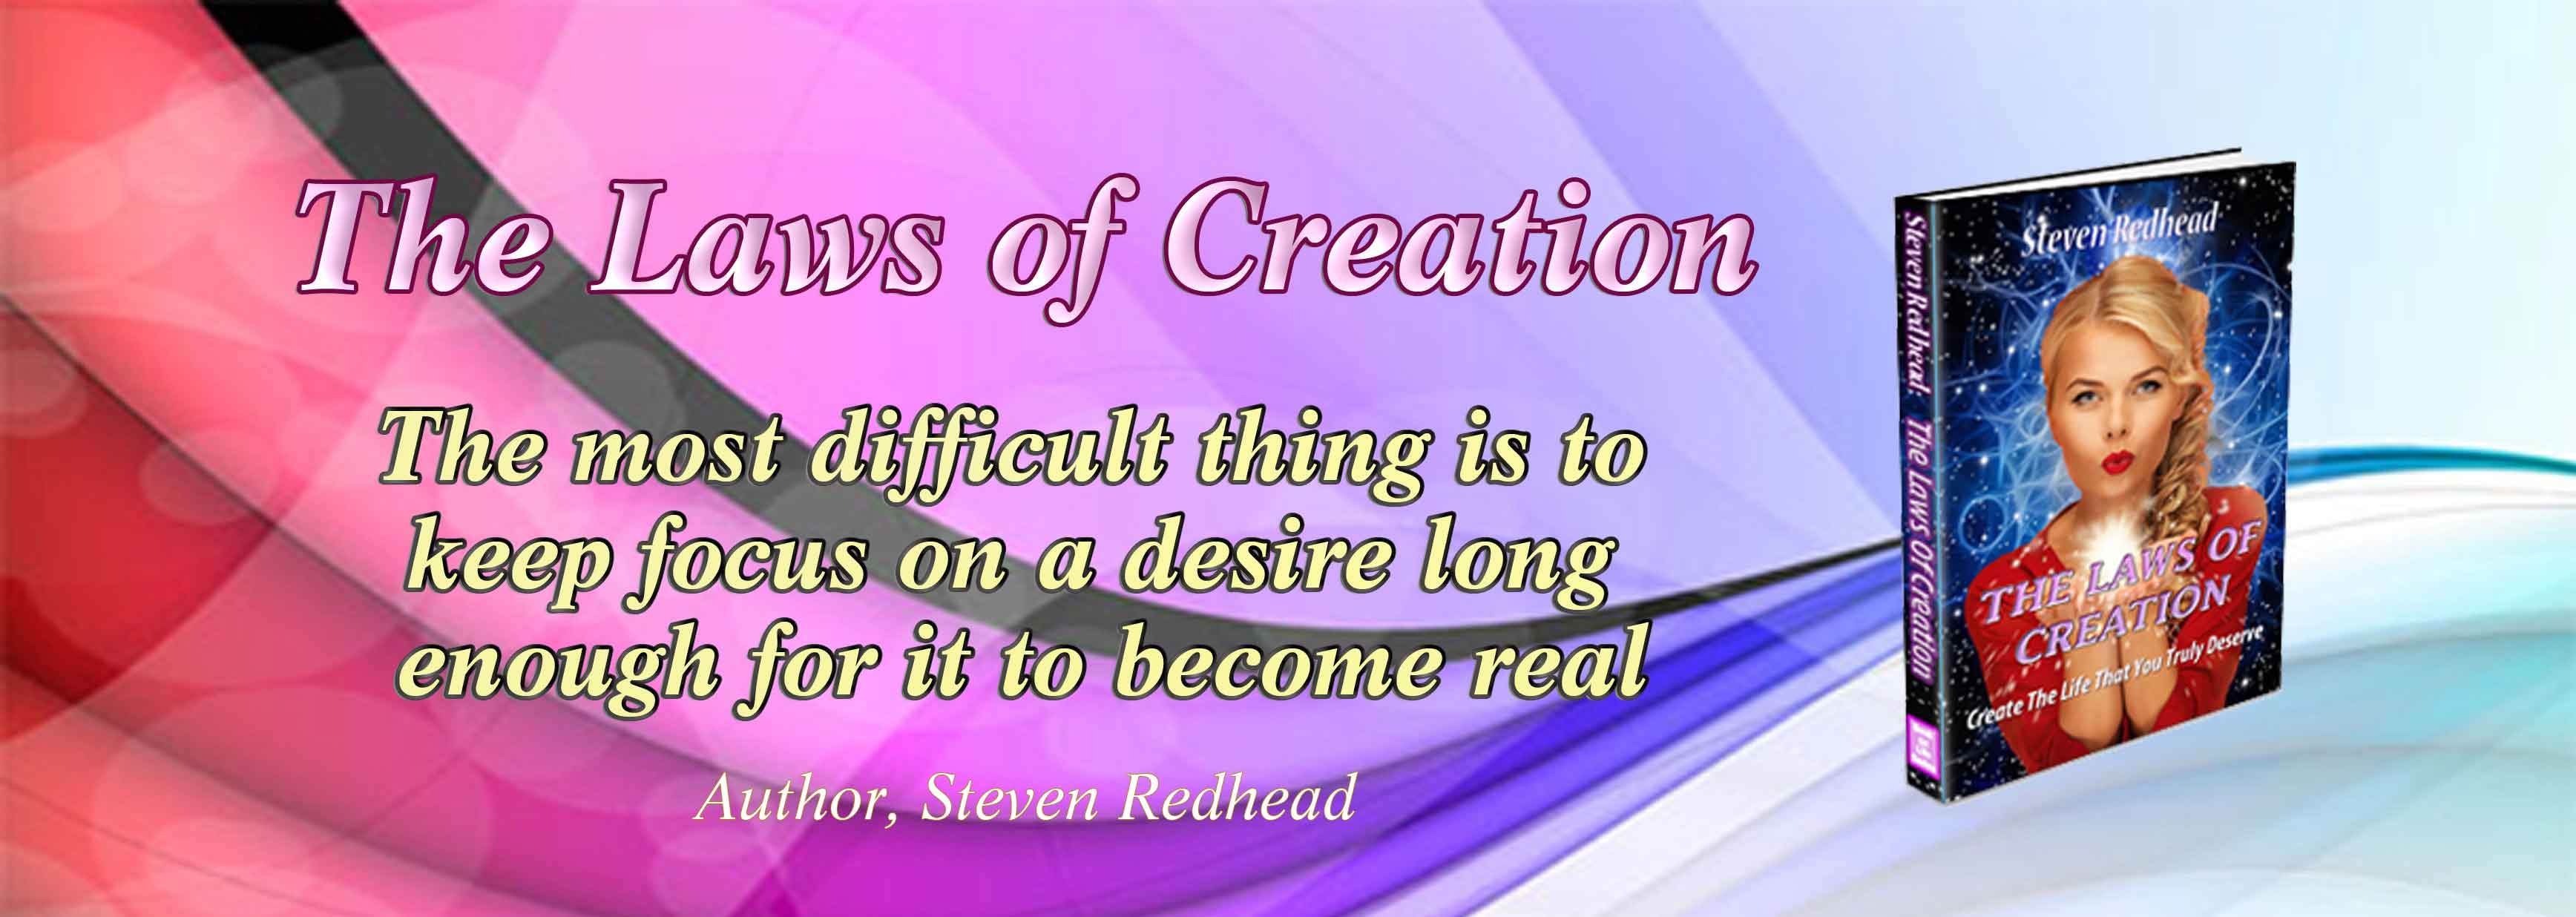 The Laws Of Creation Book